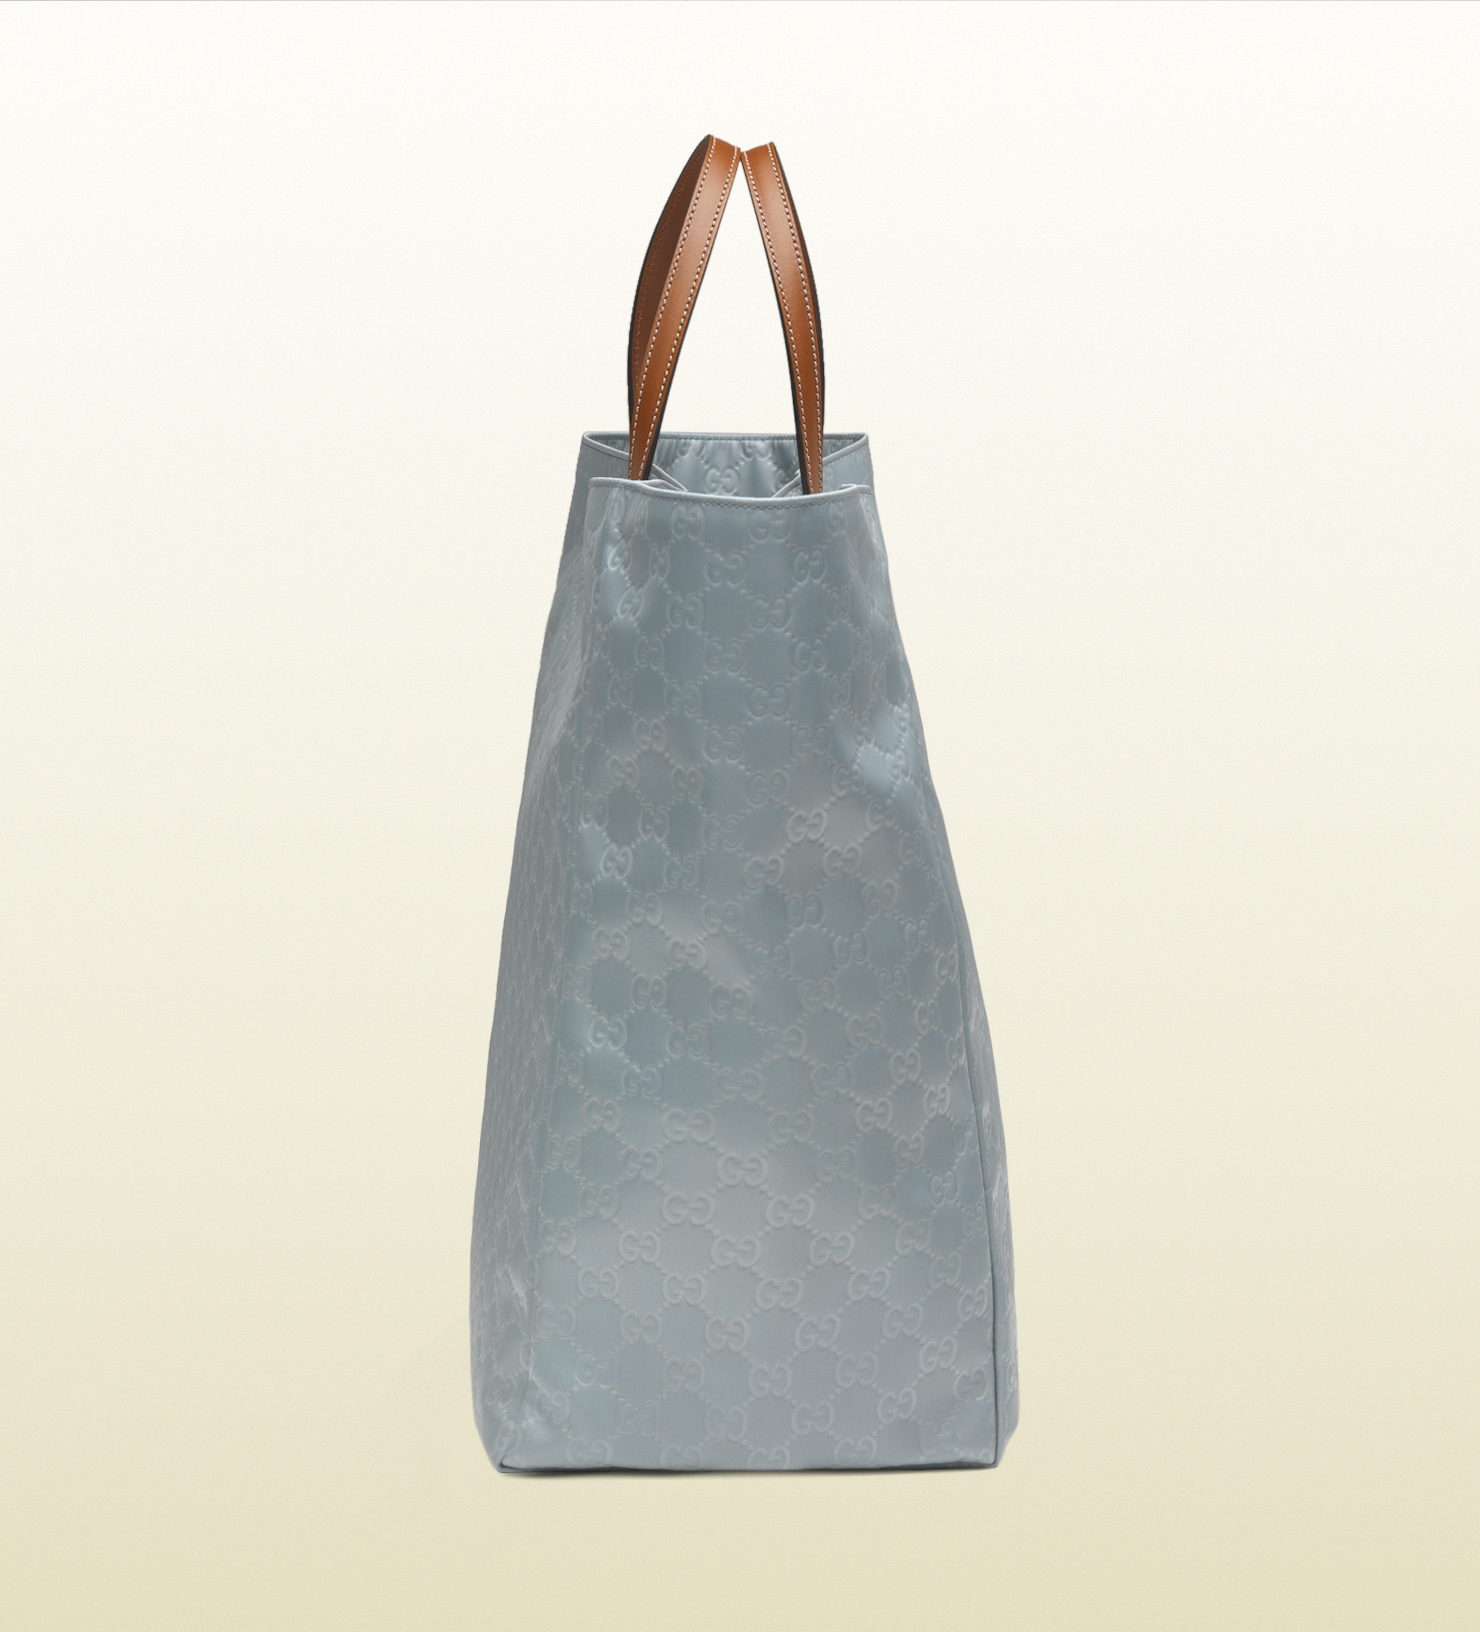 67cf6935a06f Lyst - Gucci Large Light Blue Nylon Guccissima Tote in Blue for Men